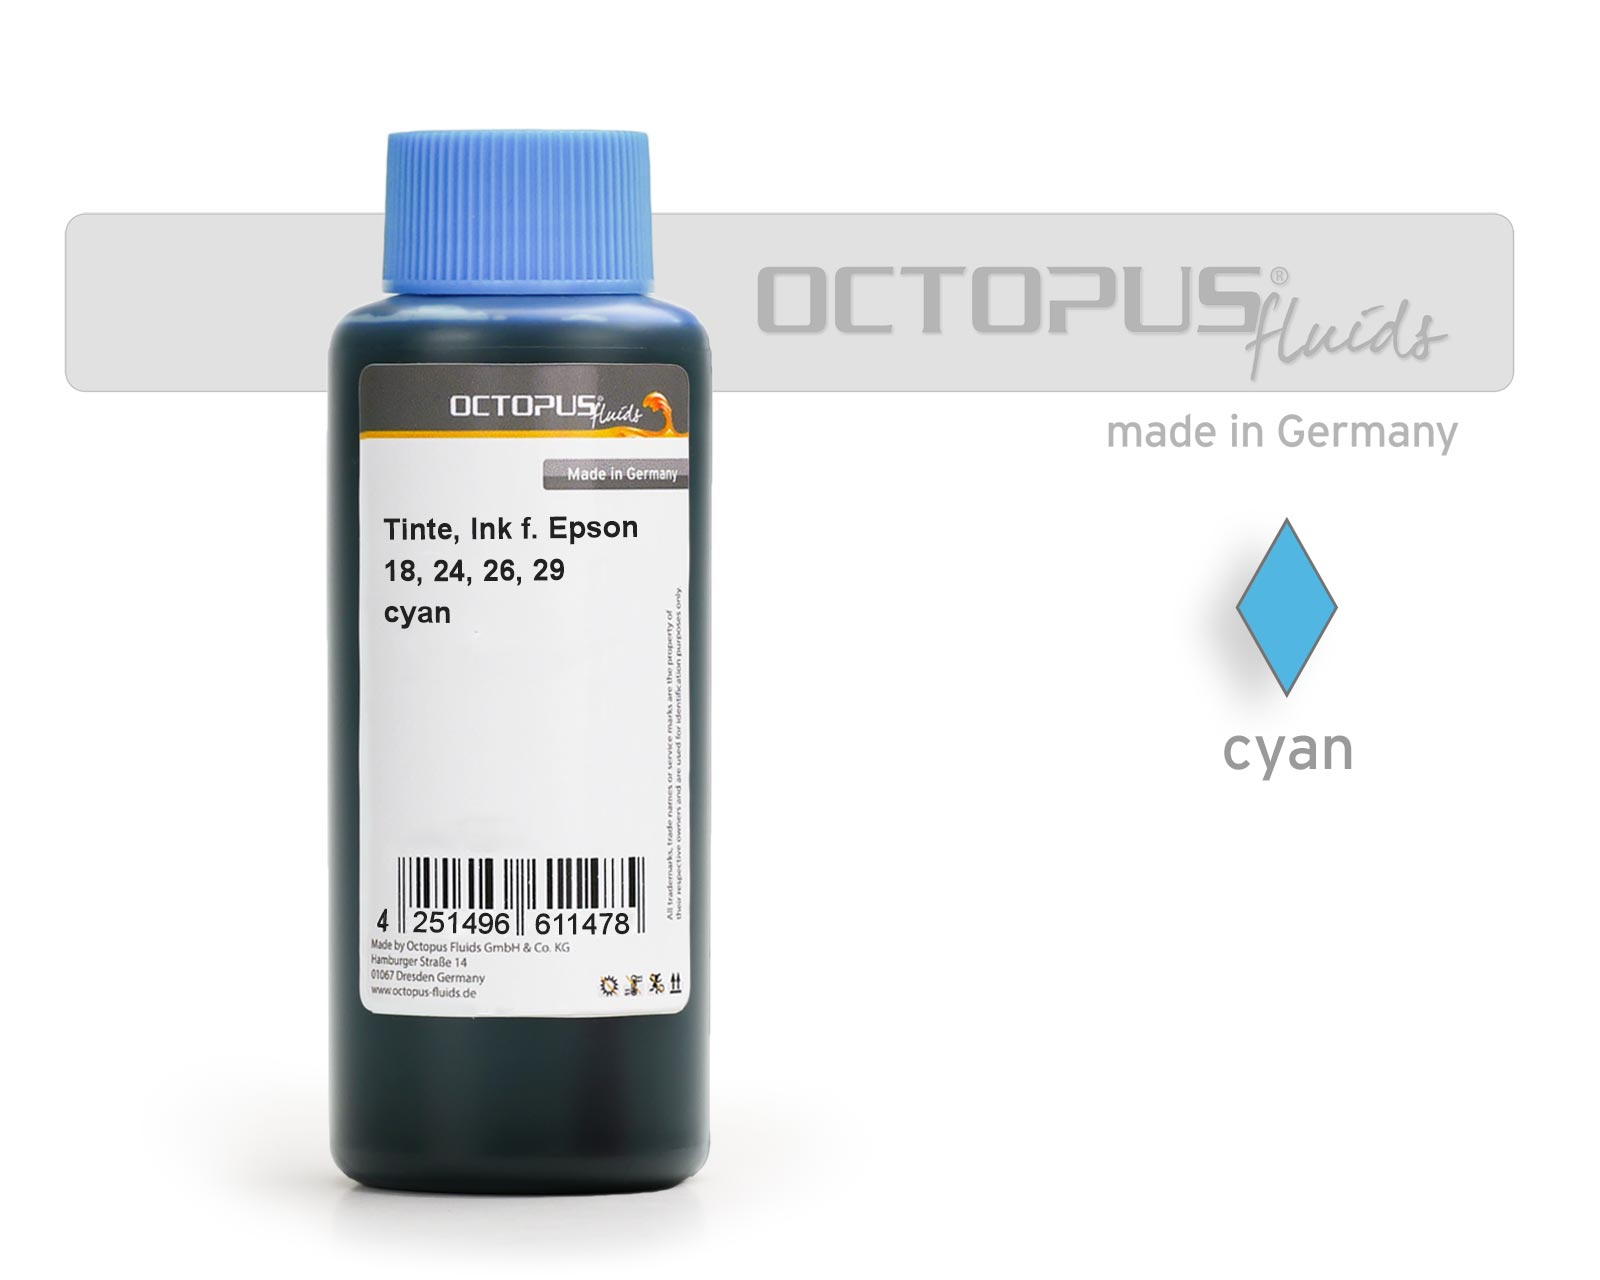 Octopus Ink for Epson 18, 24, 26, 29 cartridges cyan